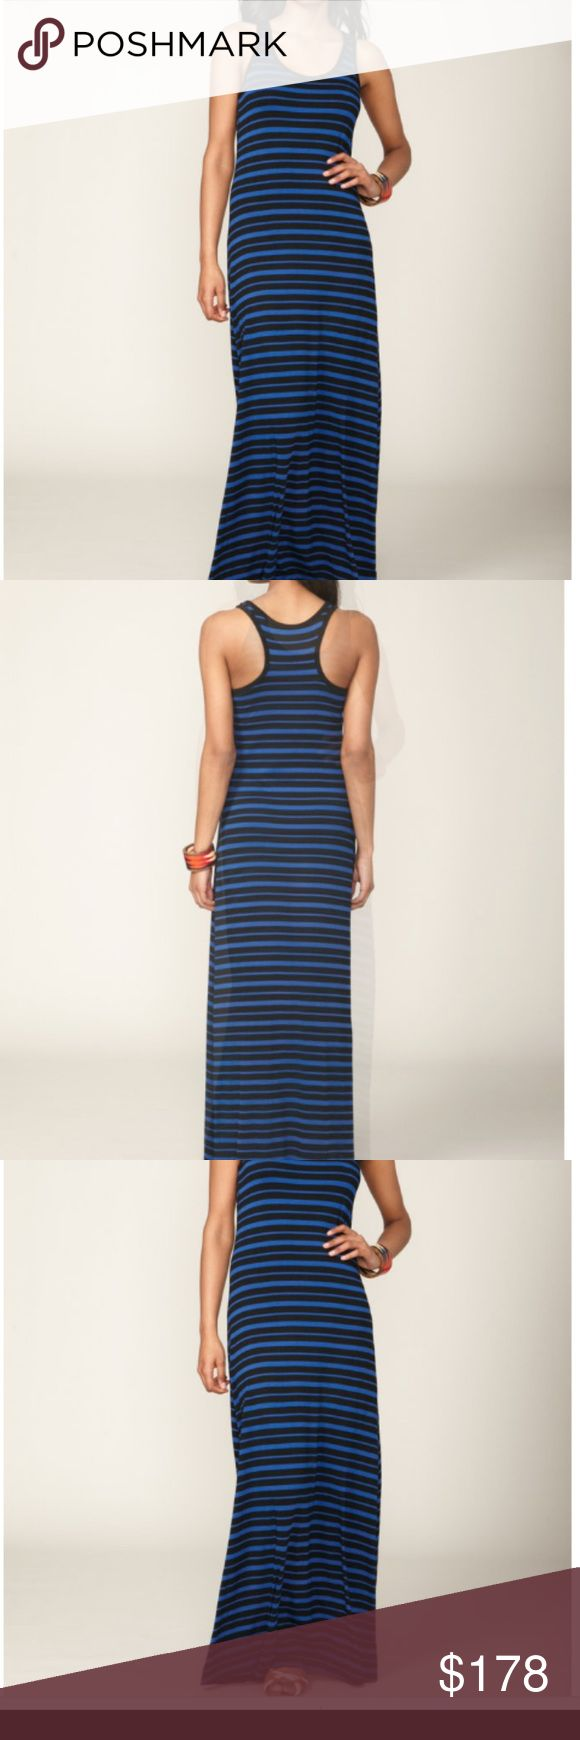 Seaton Scuba Striped Maxi Dress In black and cobalt stripes. Racer tank back. Excellent condition, only worn once. Seaton Dresses Maxi